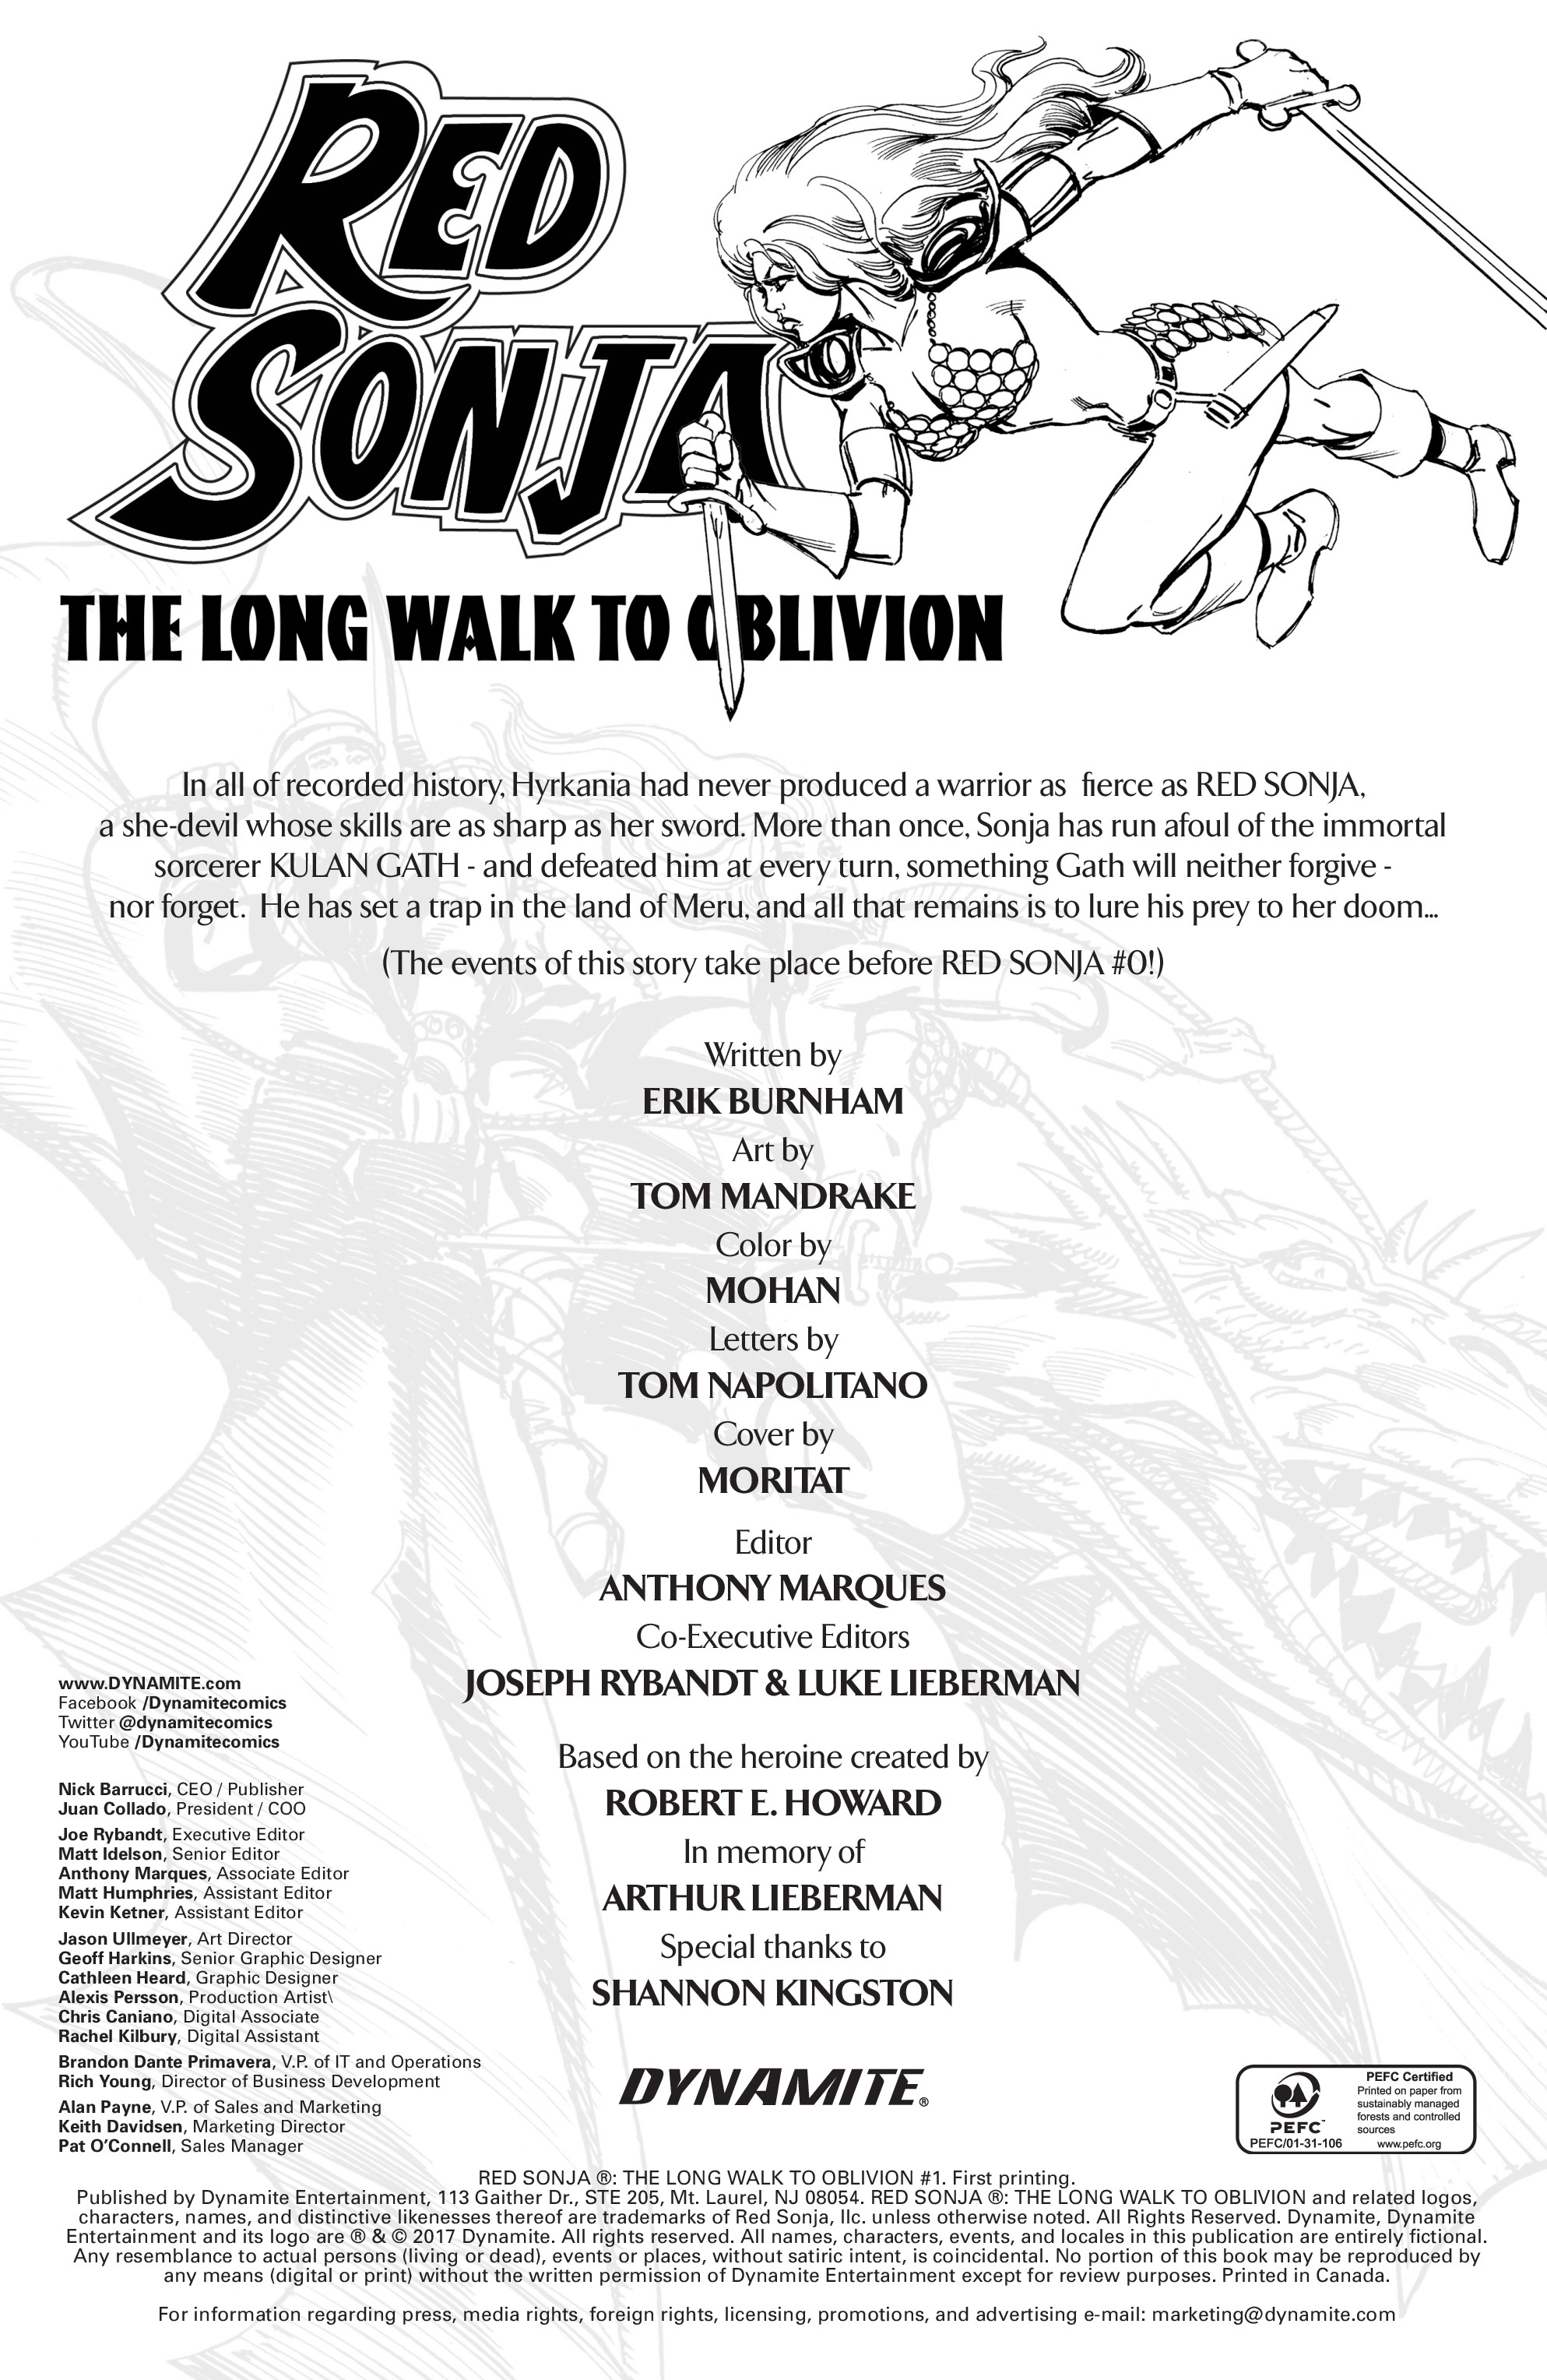 Read online Red Sonja: The Long Walk To Oblivion comic -  Issue # Full - 2